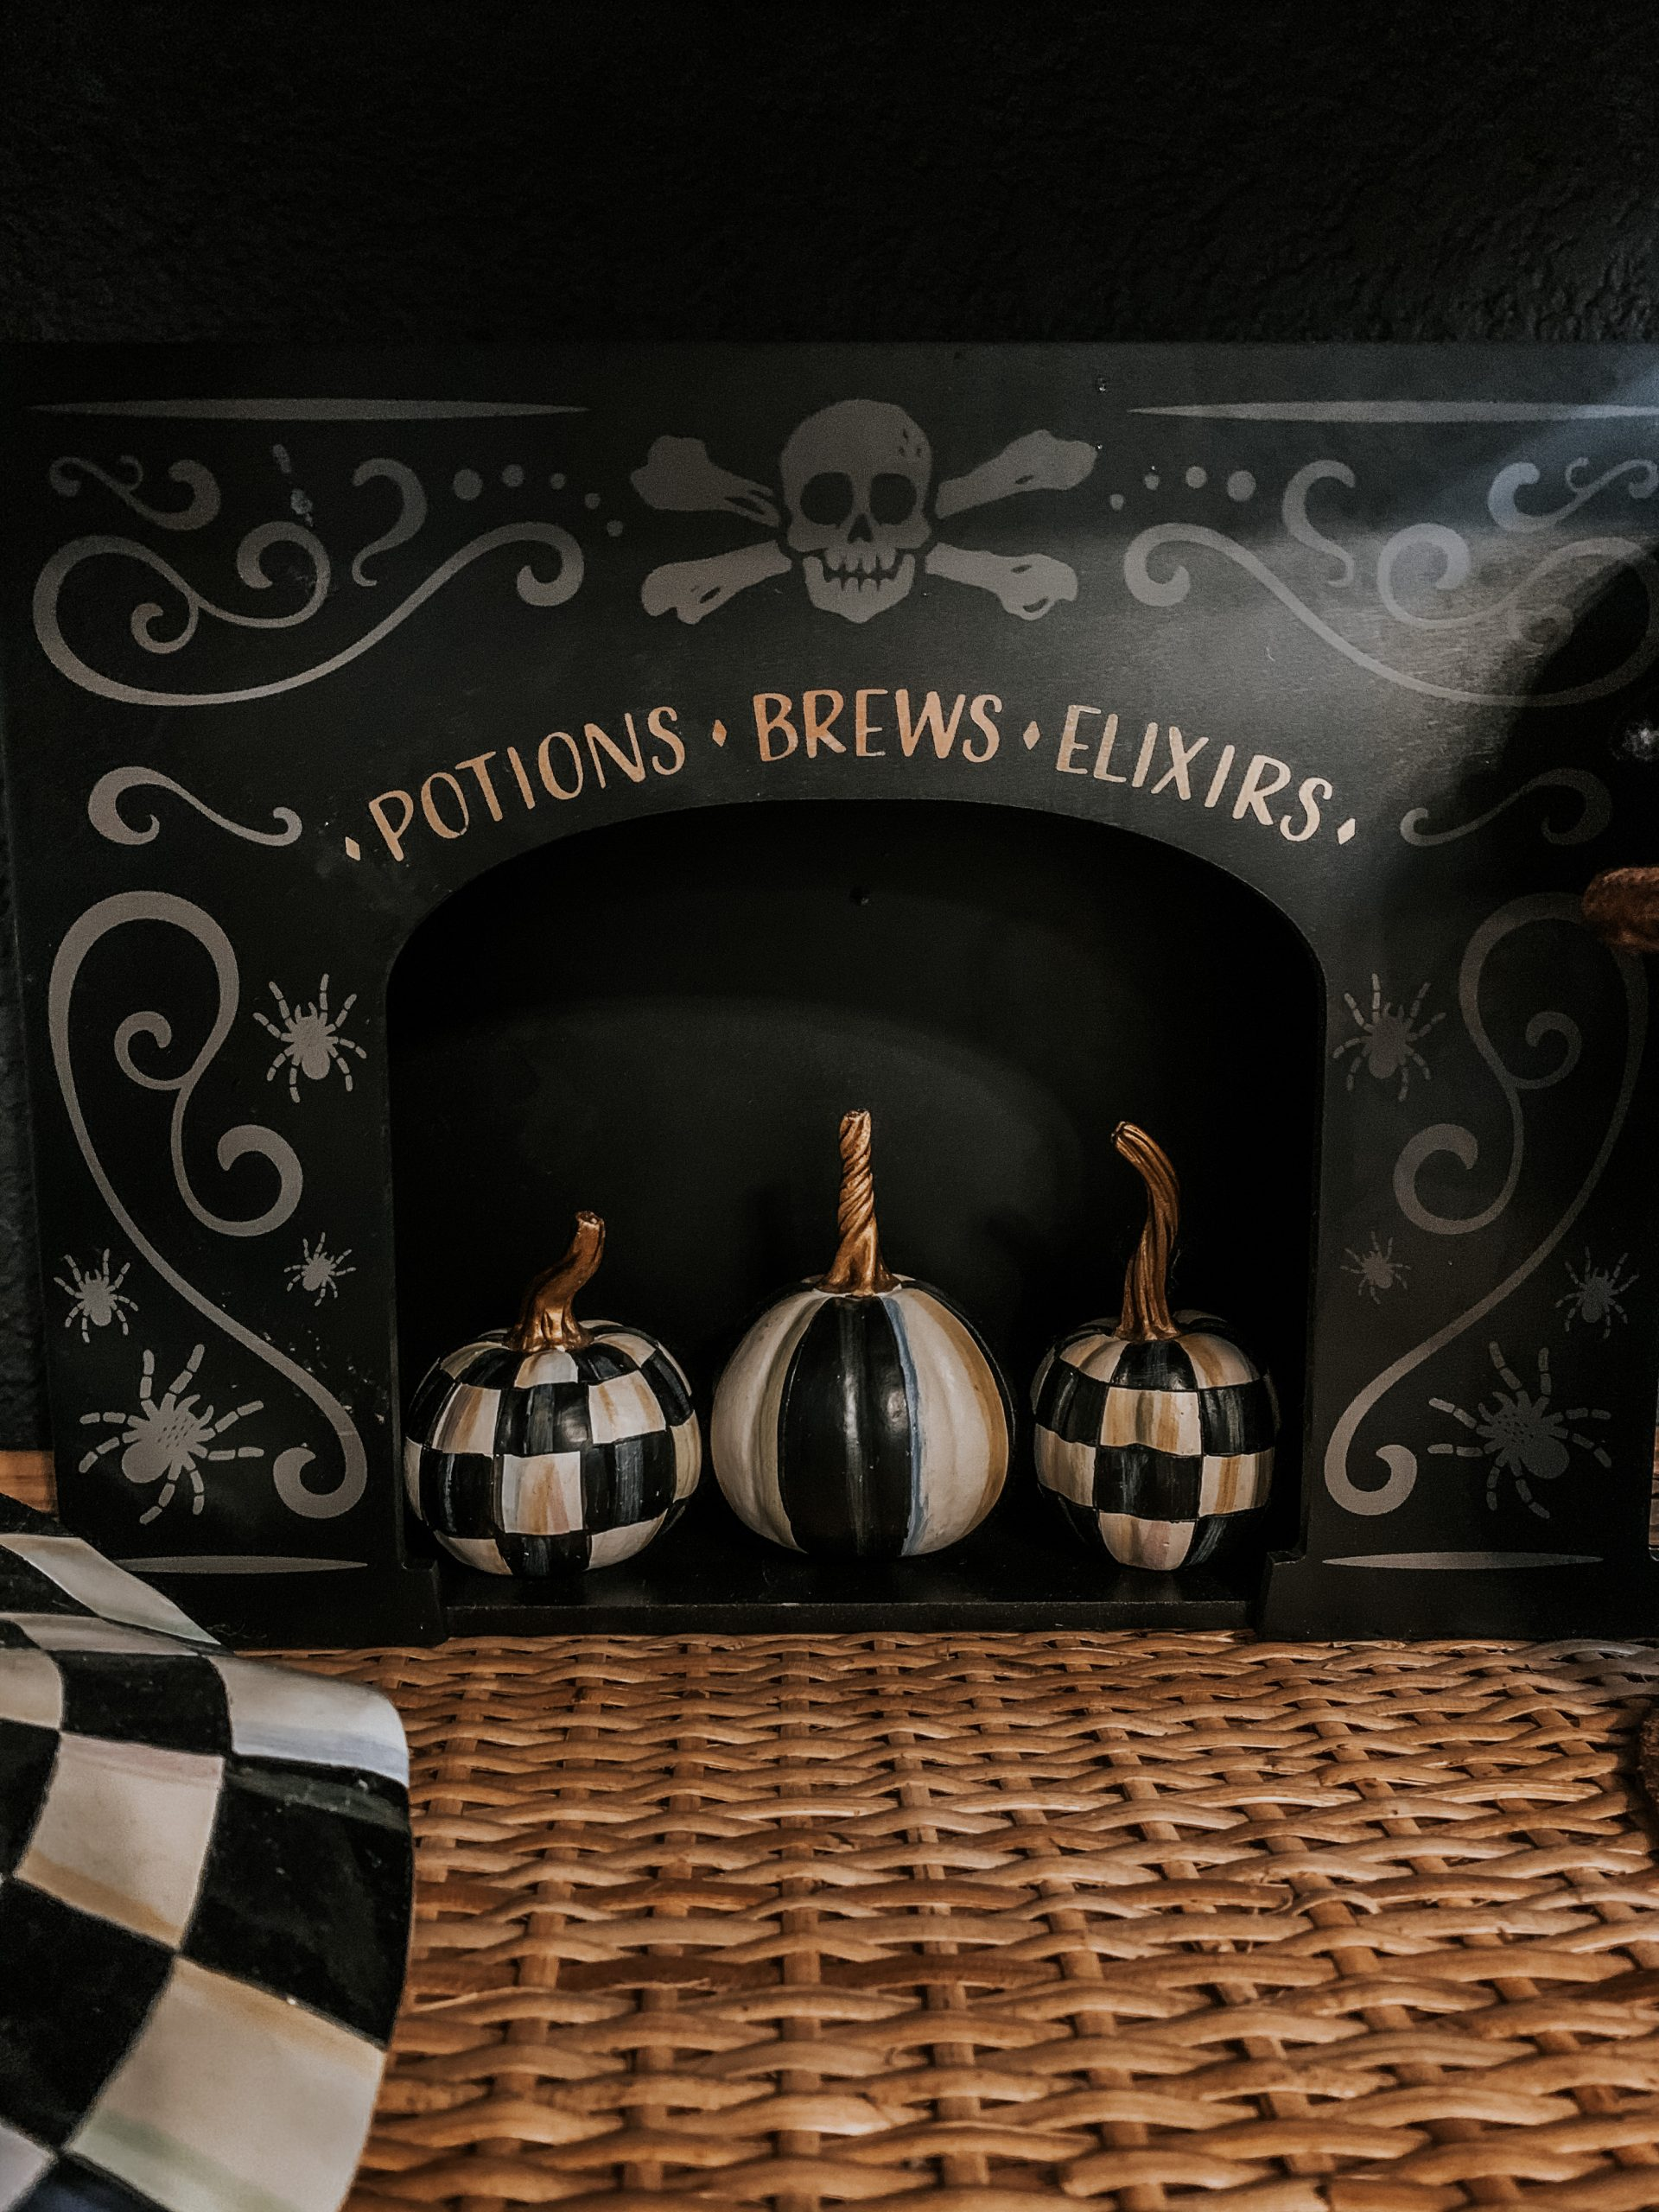 Potions Brews and Elixirs Halloween Decor